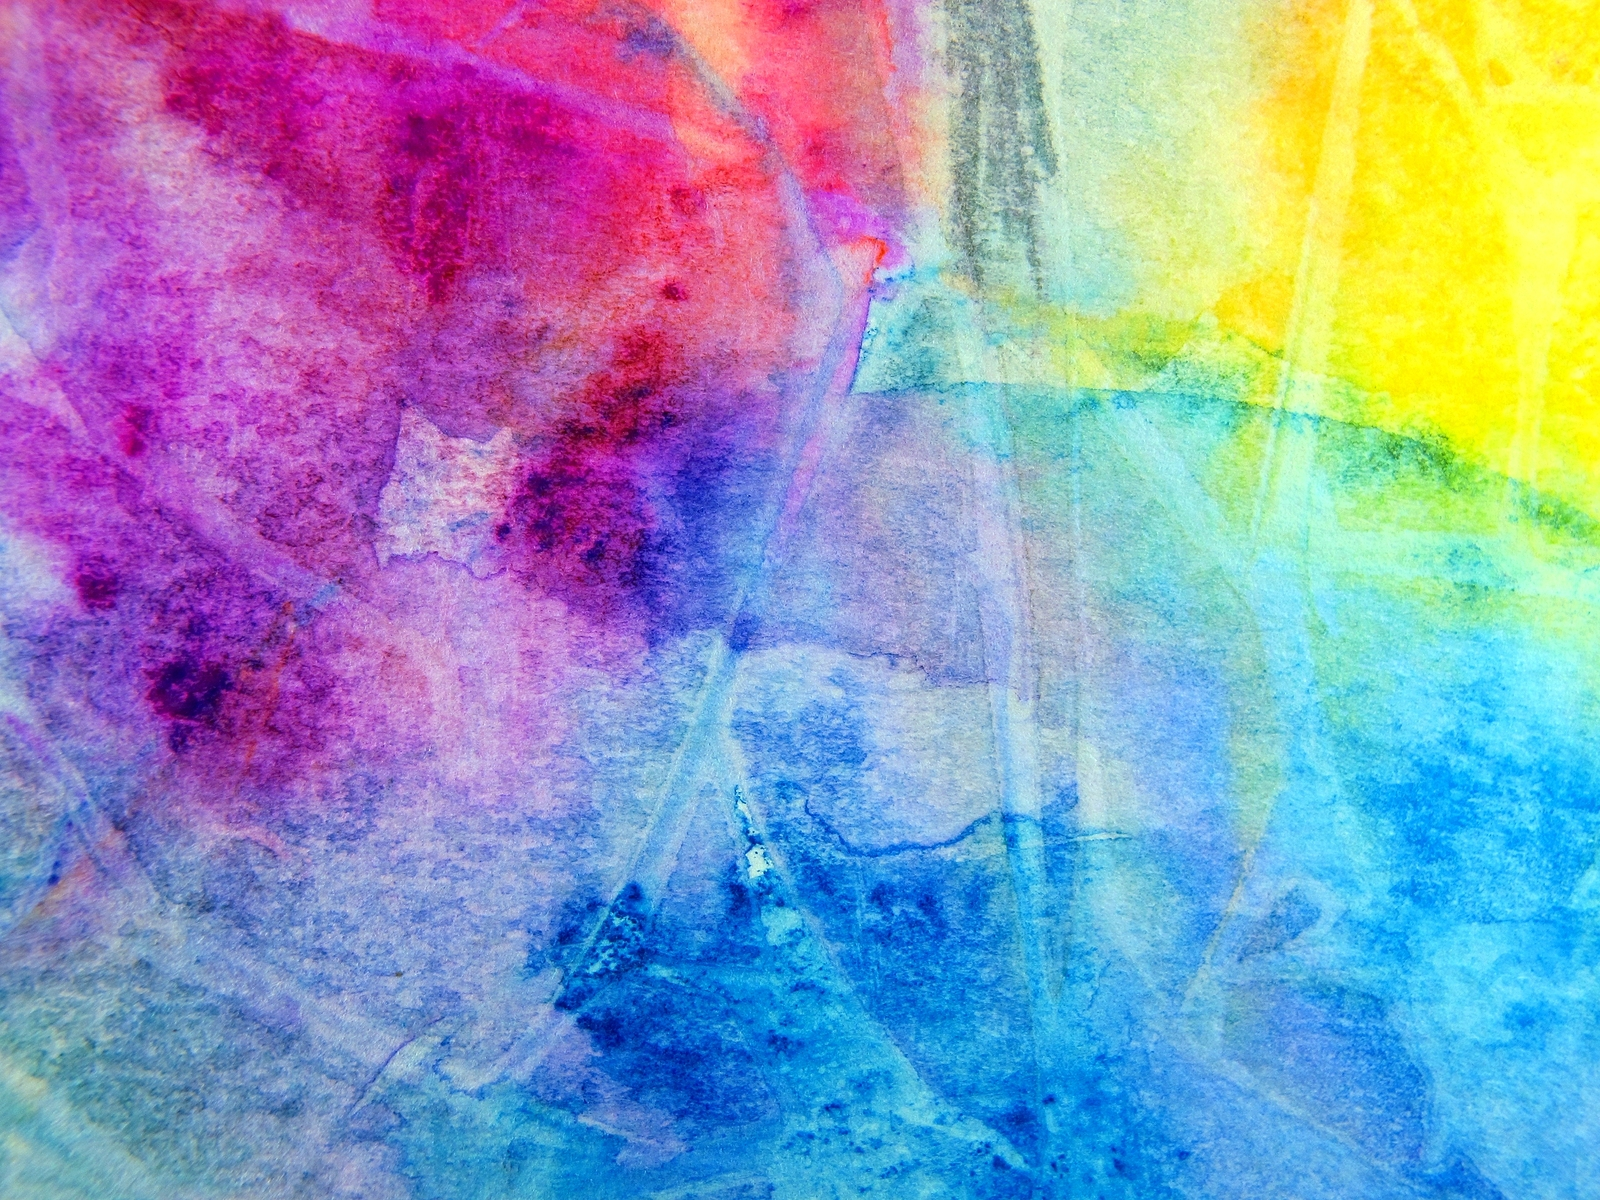 bigstock-Colourful-Layers-of-Watercolou-32046581.jpg